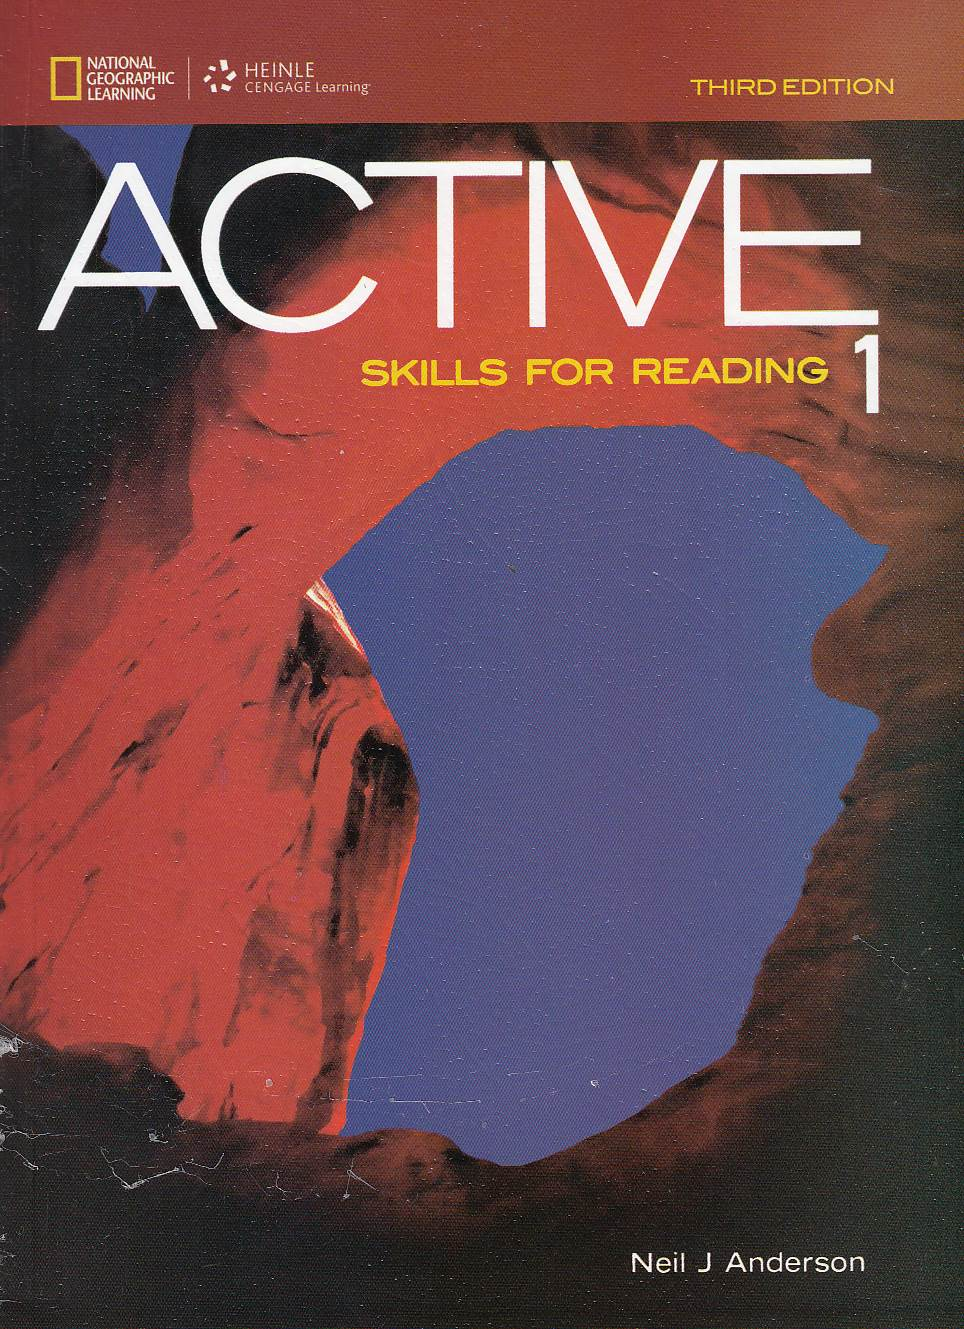 active-skills-for-reading1ويرايش3--